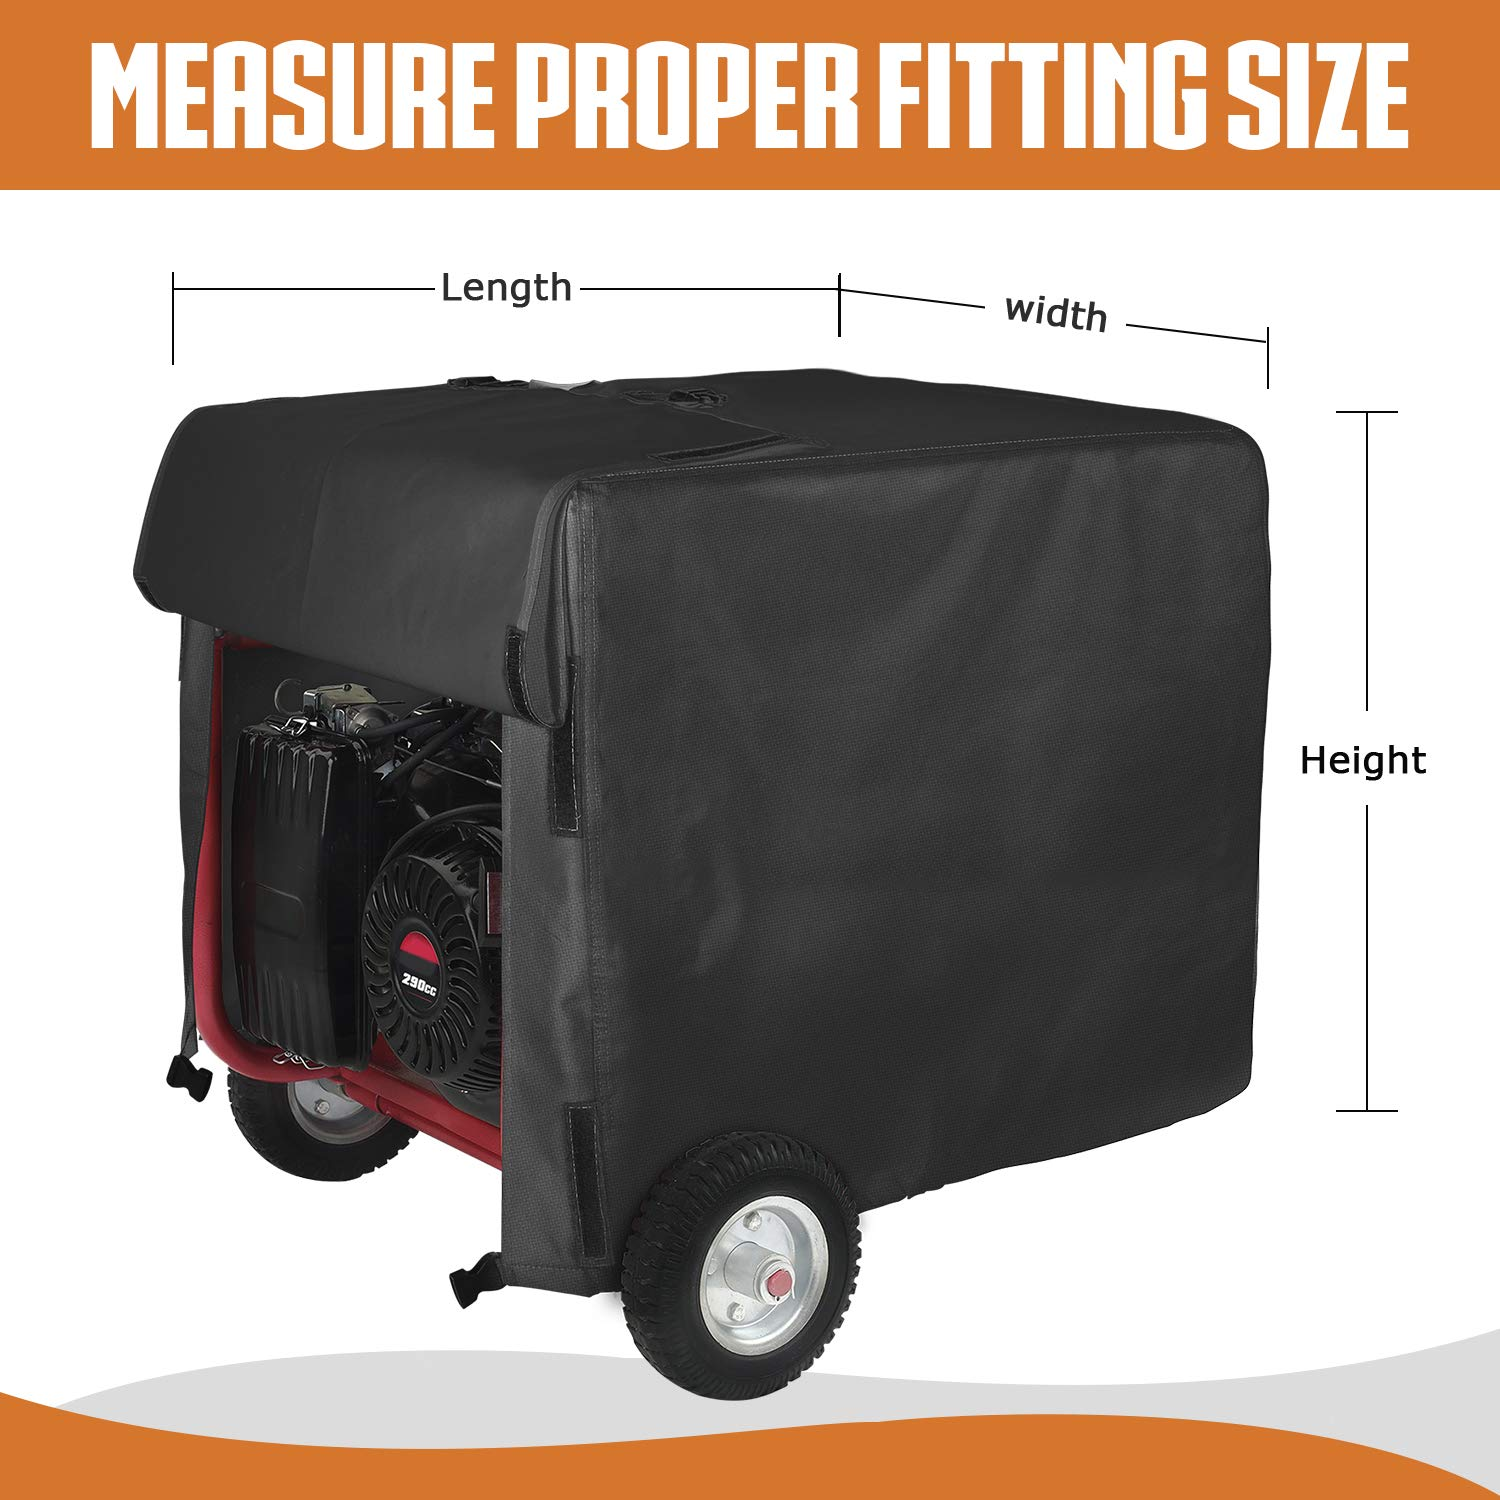 Leader Accessories Durable Universal Waterproof Generator Cover (31'' Lx 29'' Wx 28'' H, Black) by Leader Accessories (Image #2)